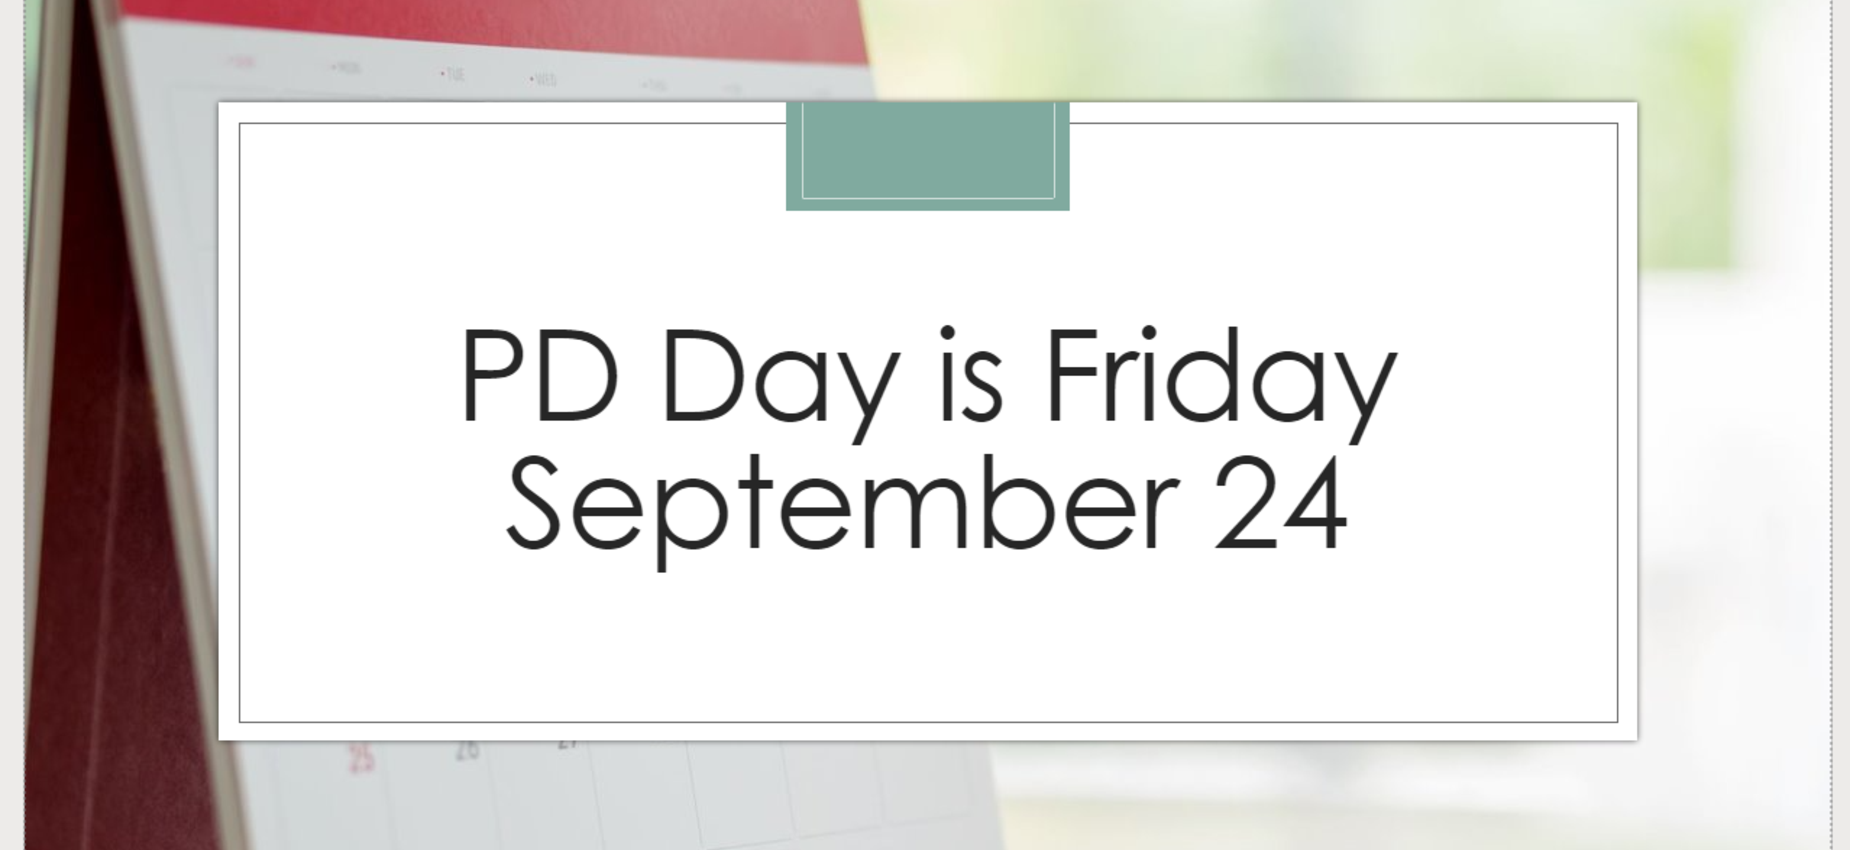 Friday September 24 is PD Day